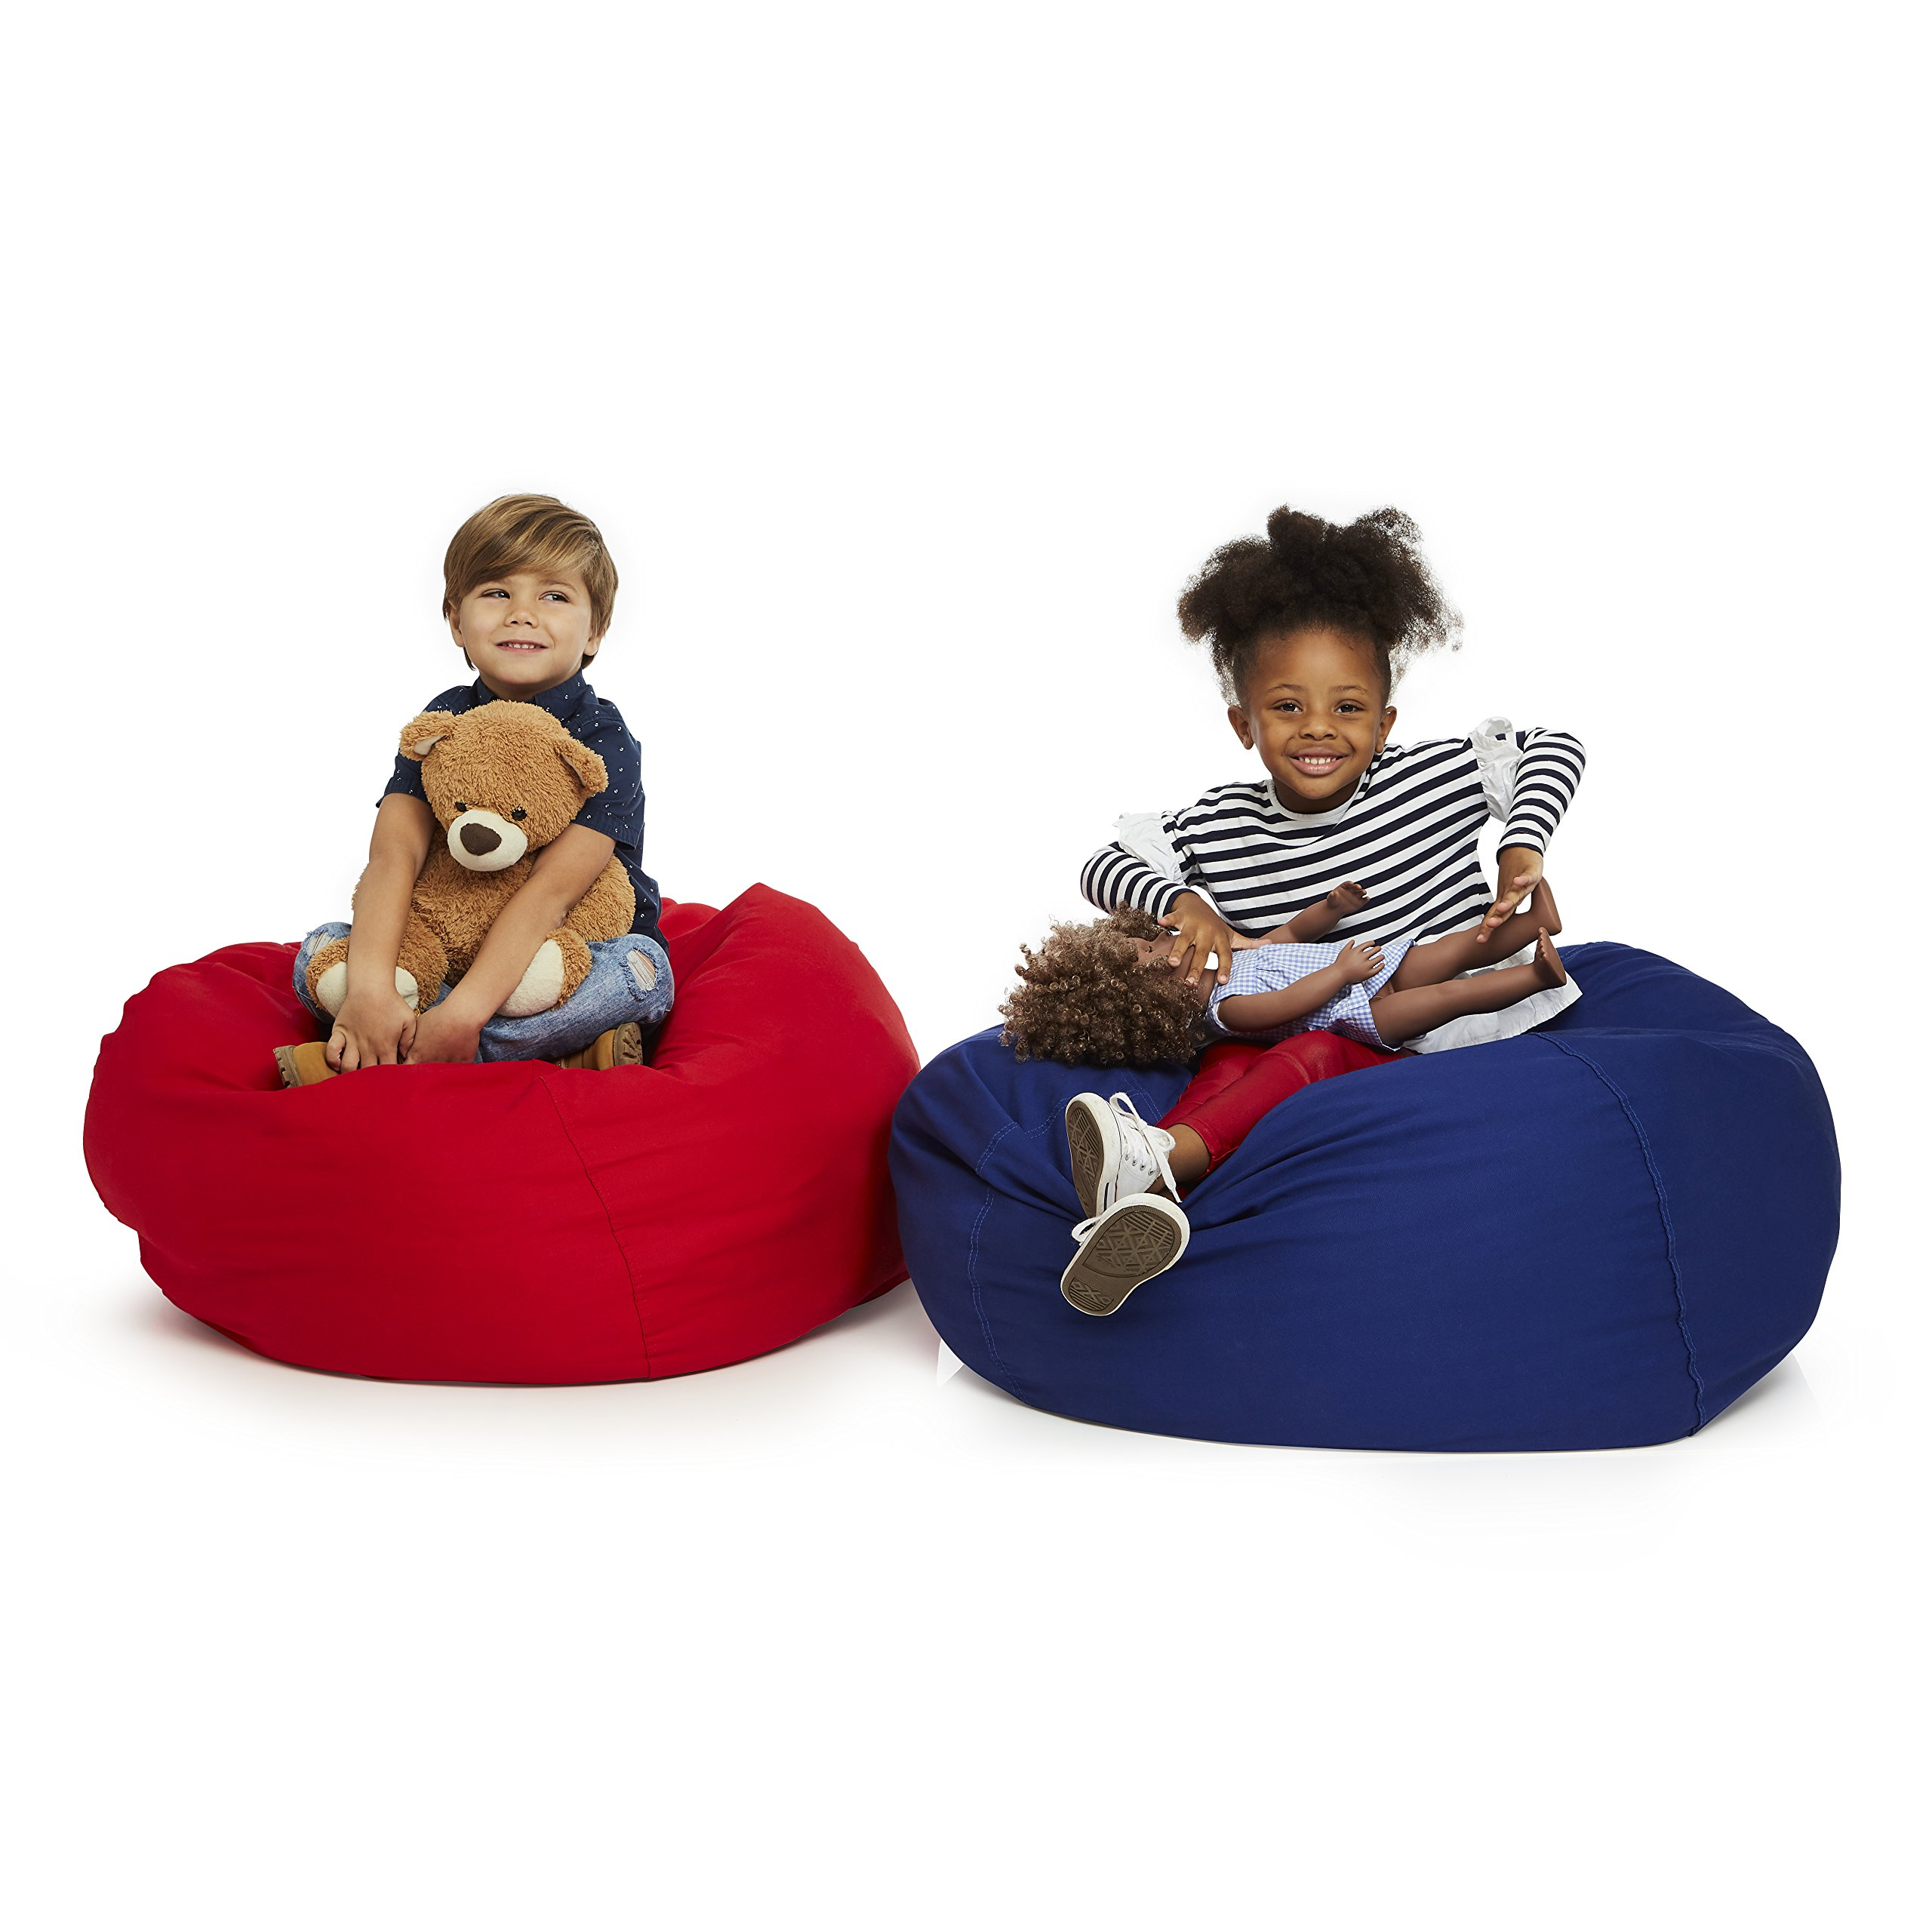 Delmach Stuffed Animal Storage Bean Bag Chair | 38'' Width Extra Large | Premium Double Stitched Cotton Canvas | Kids Blue Bean Bag Cover by Delmach (Image #6)